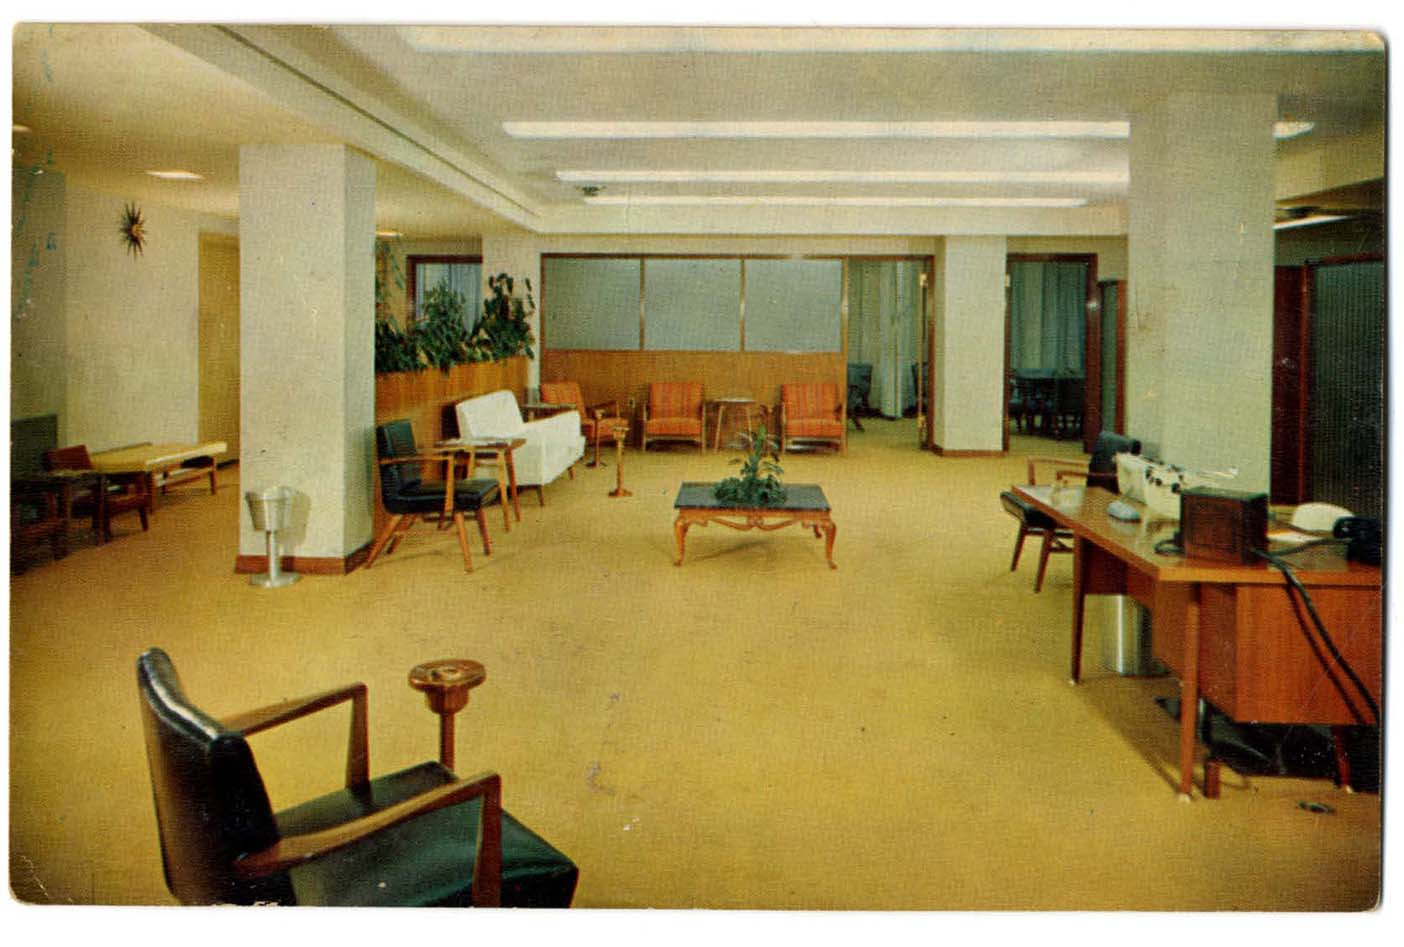 1000 images about mid century modern office on pinterest mid century mid century modern and. Black Bedroom Furniture Sets. Home Design Ideas